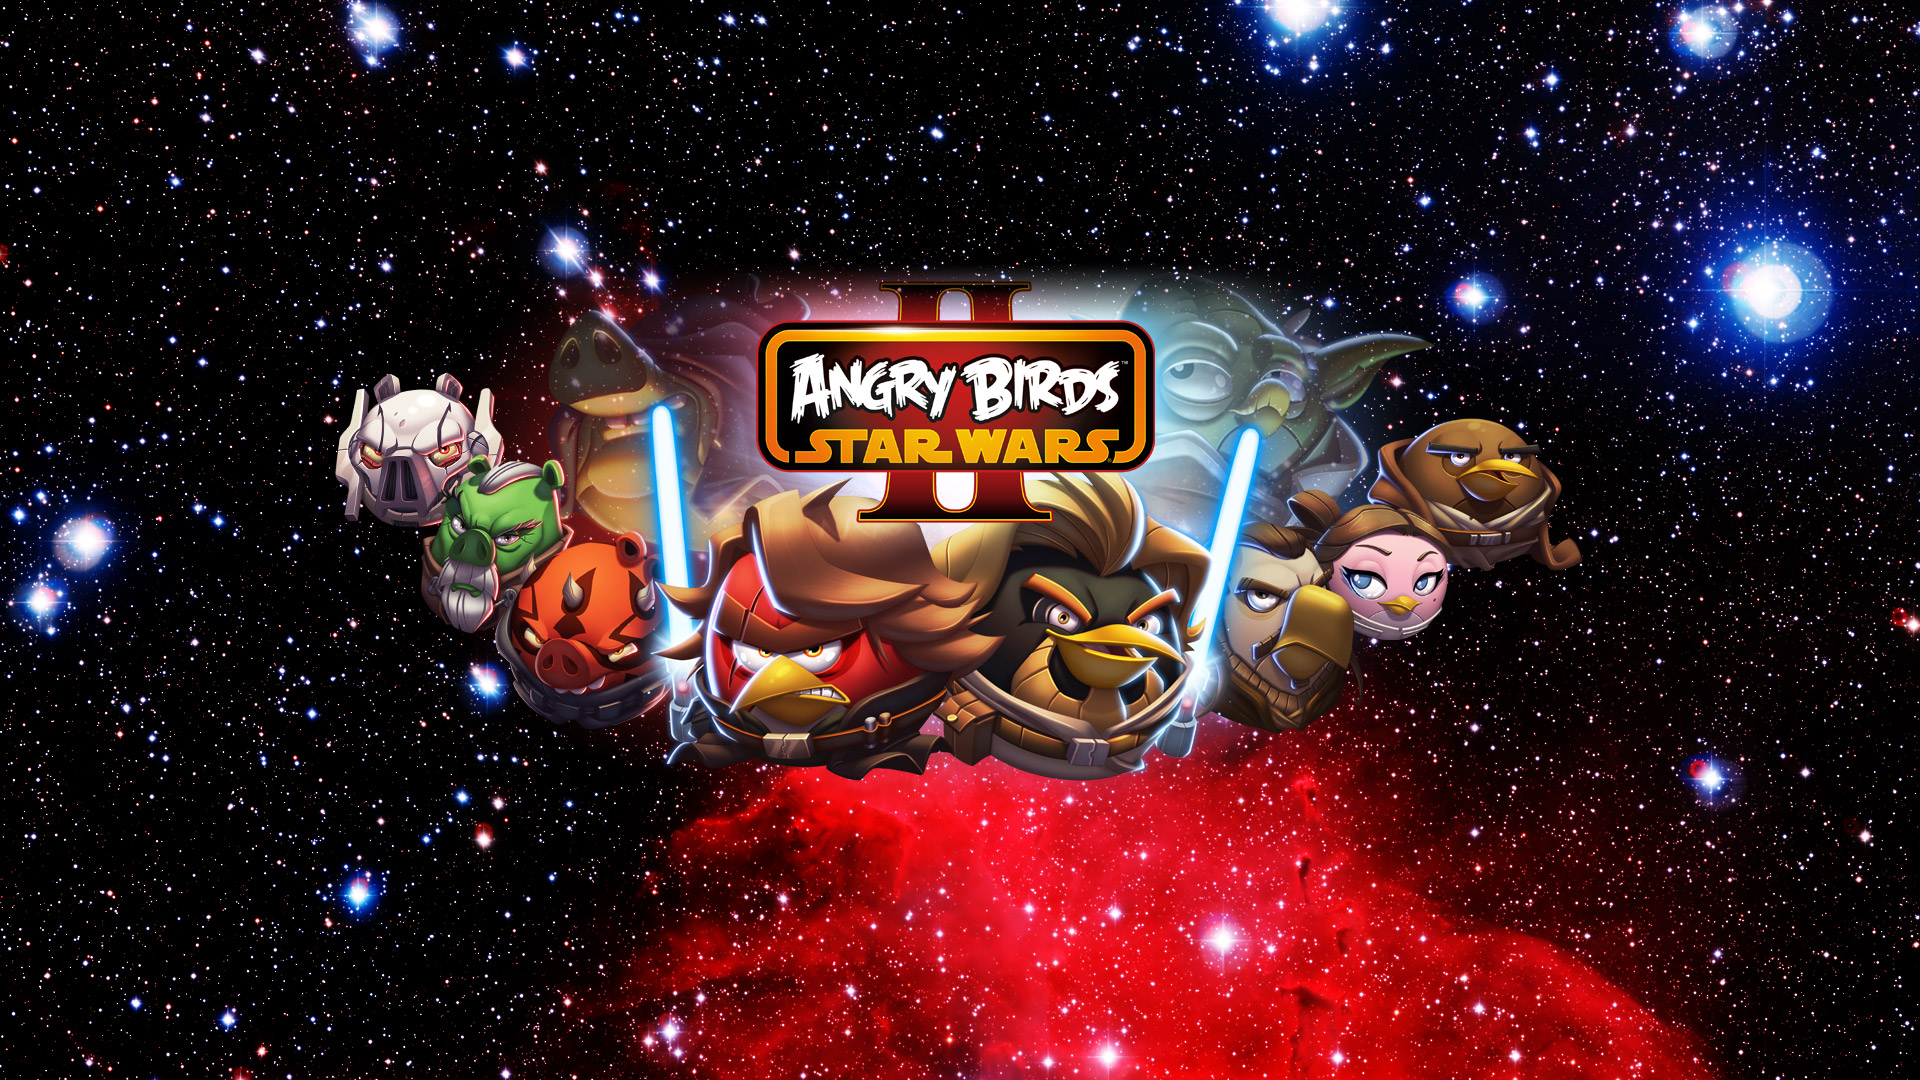 Free Angry Birds Star Wars II Wallpaper in 1920x1080